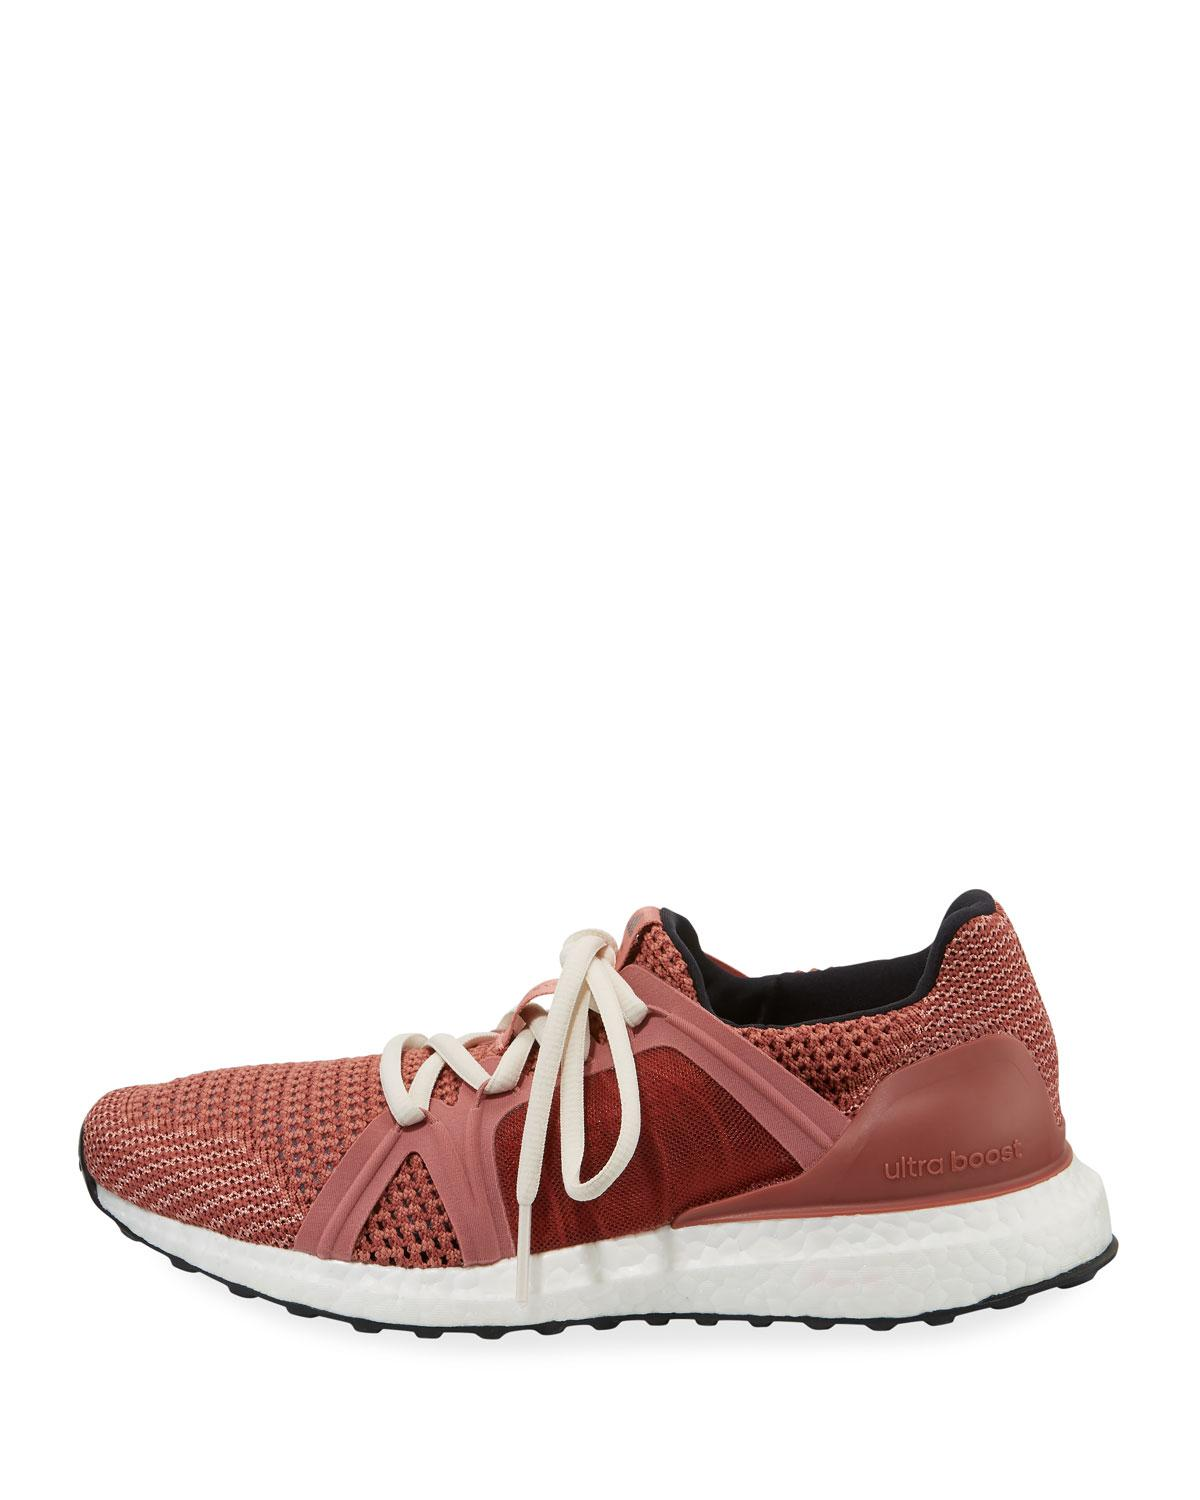 78f38408456 Lyst - adidas By Stella McCartney Ultraboost Sneakers in Pink - Save 47%